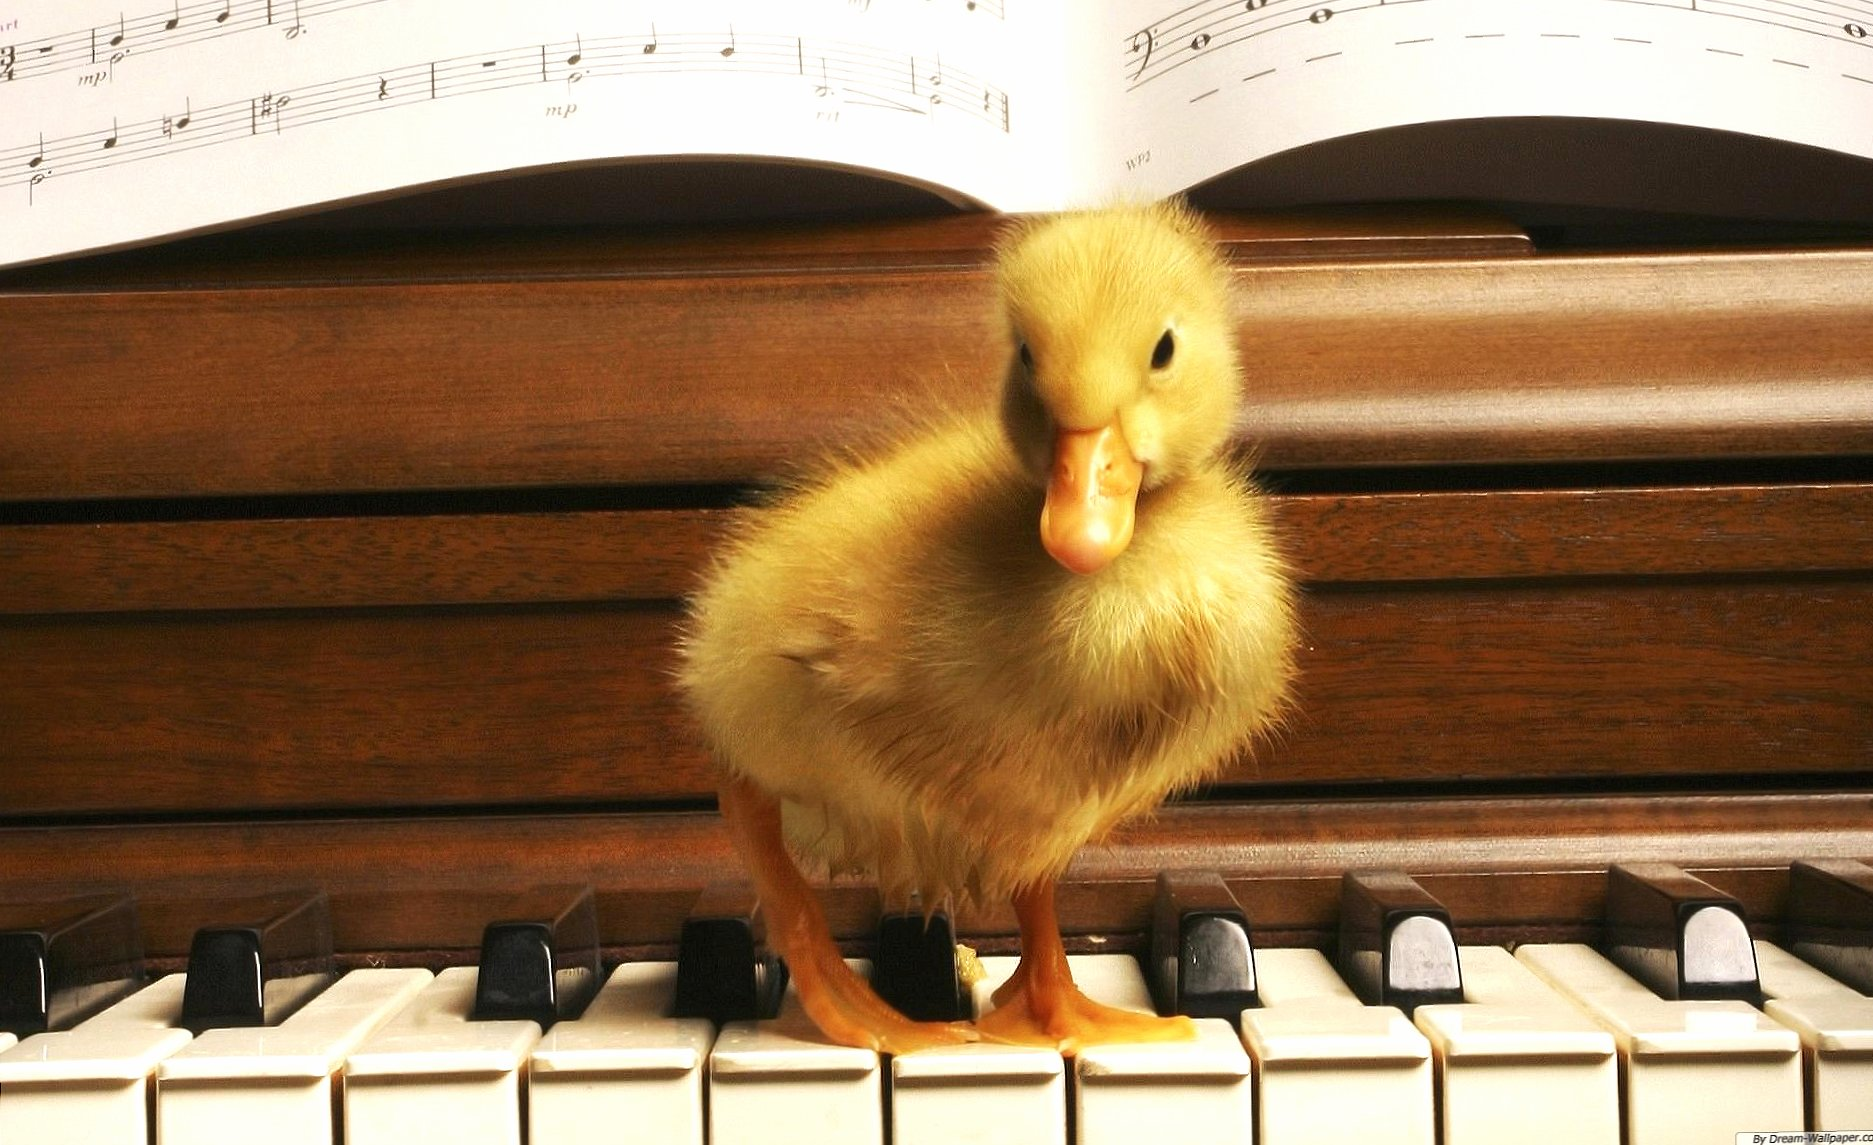 Weird duck play piano wallpapers HD quality